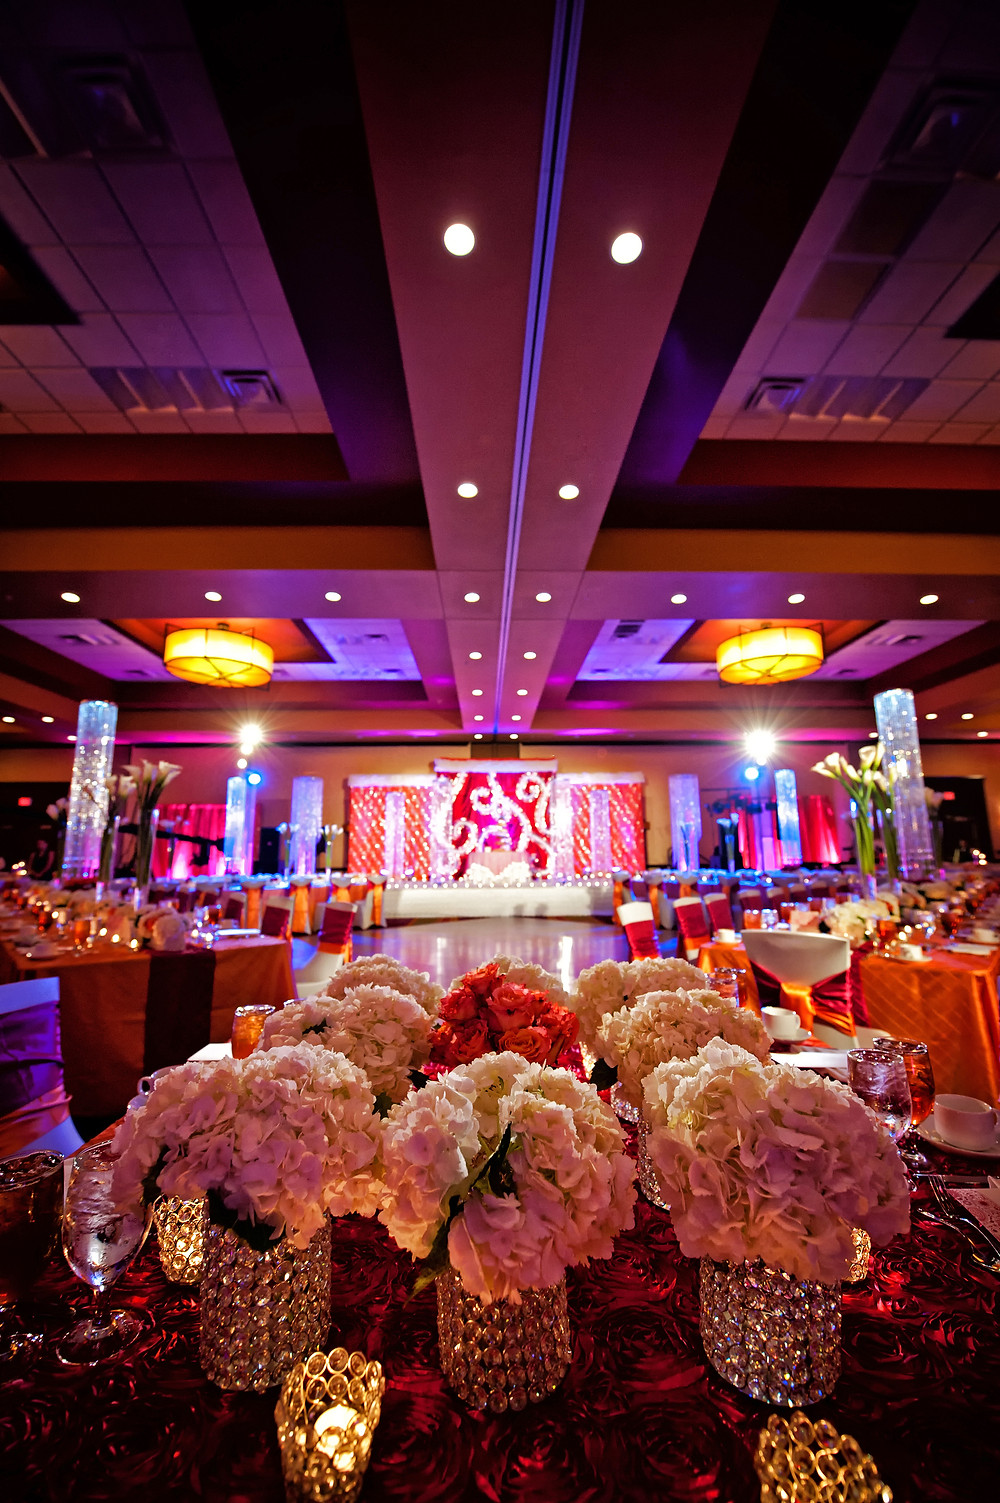 chantls wedding and event planners, Chicago Illinois and Northwest Indiana